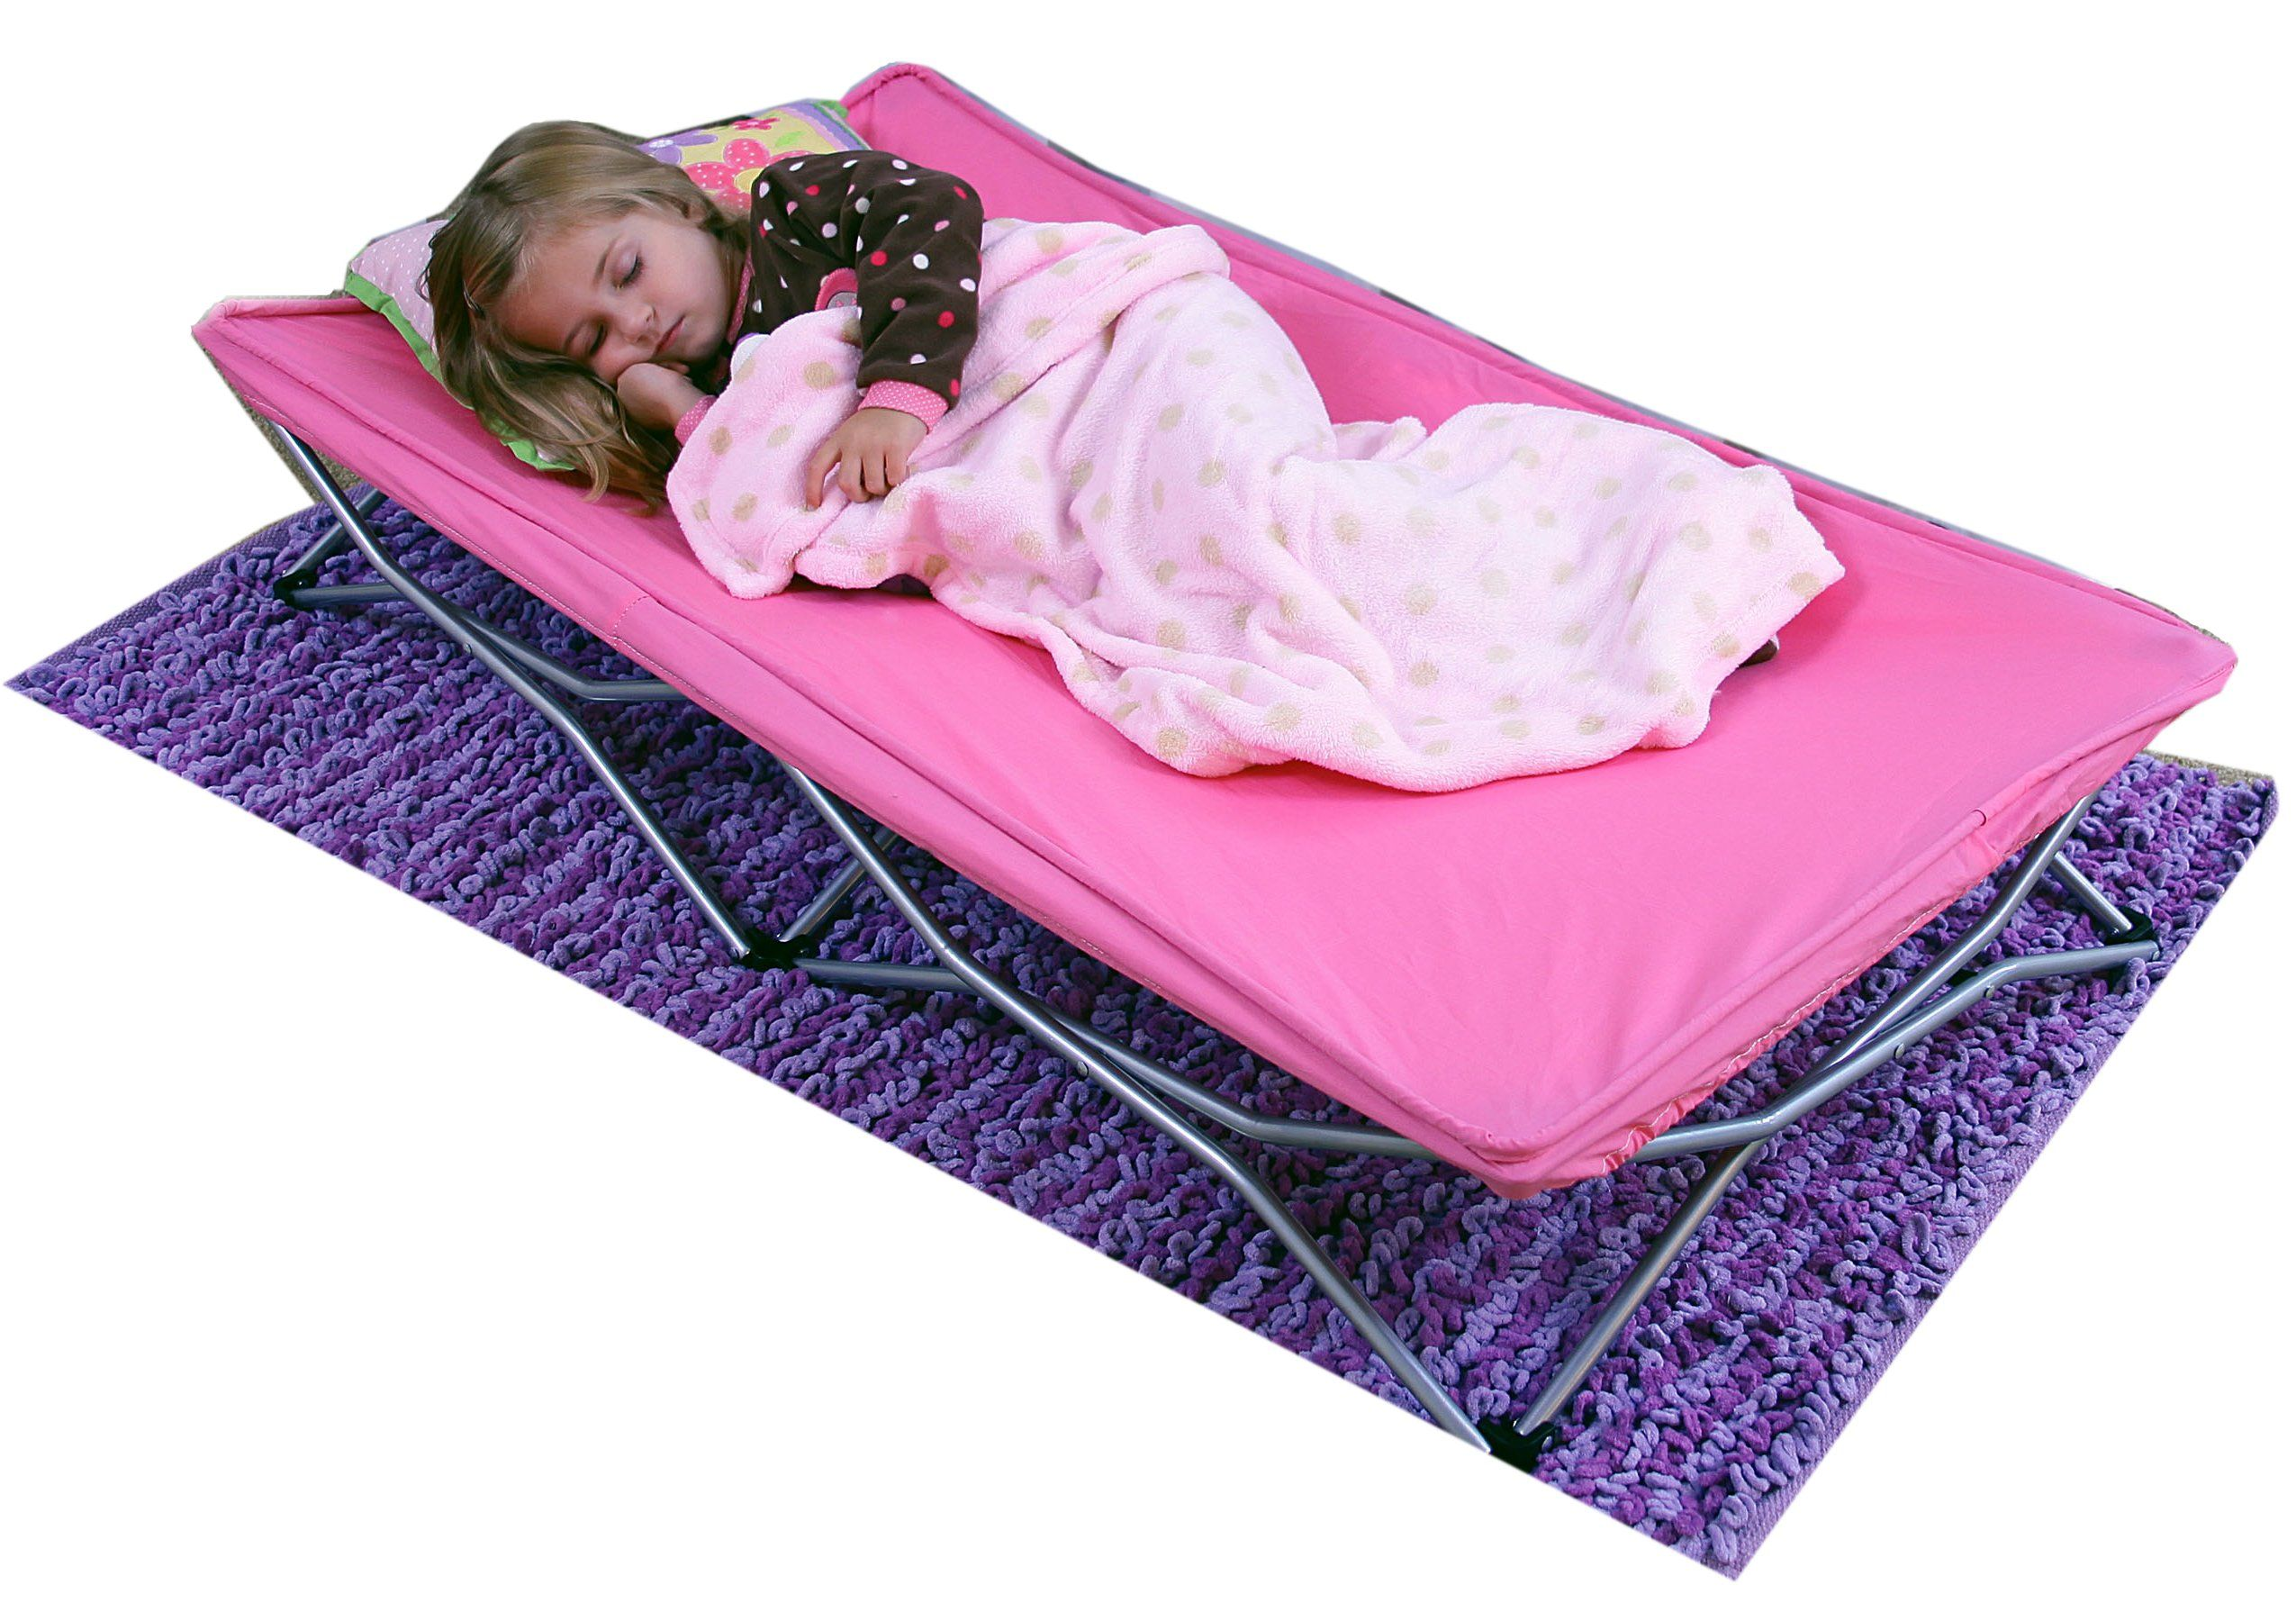 Color Pink The Regalo My Cot Is A Child S Size Portable Sleeping Cot With So Many Uses It S Great For The Home Portable Toddler Bed Toddler Cot Pink Bedding